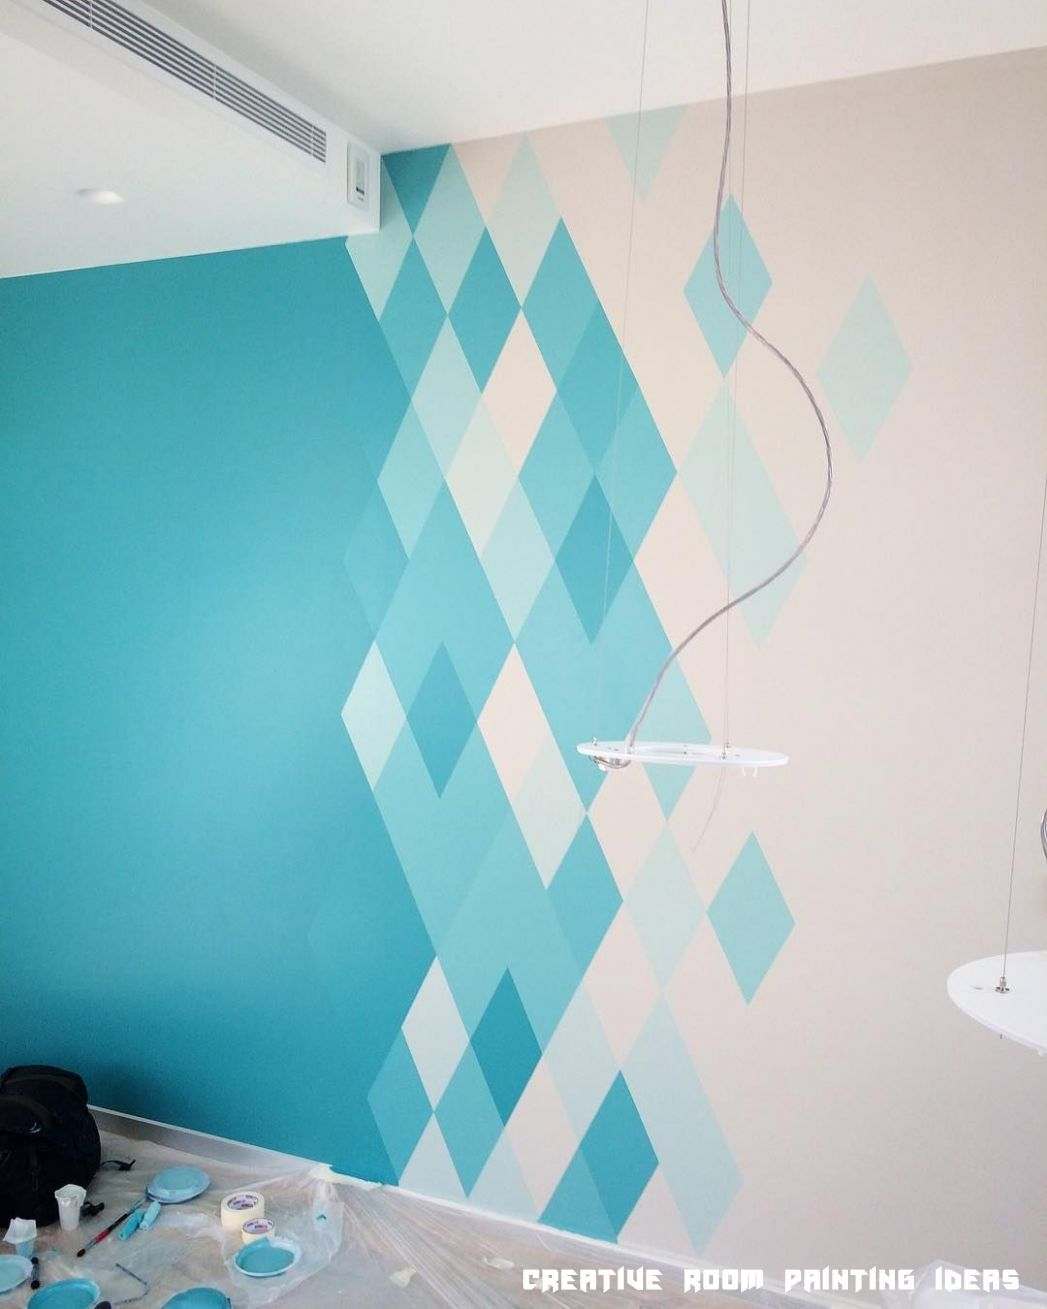 10 Creative Room Painting Ideas In 2020 Creative Wall Painting Wall Paint Designs Bedroom Wall Paint